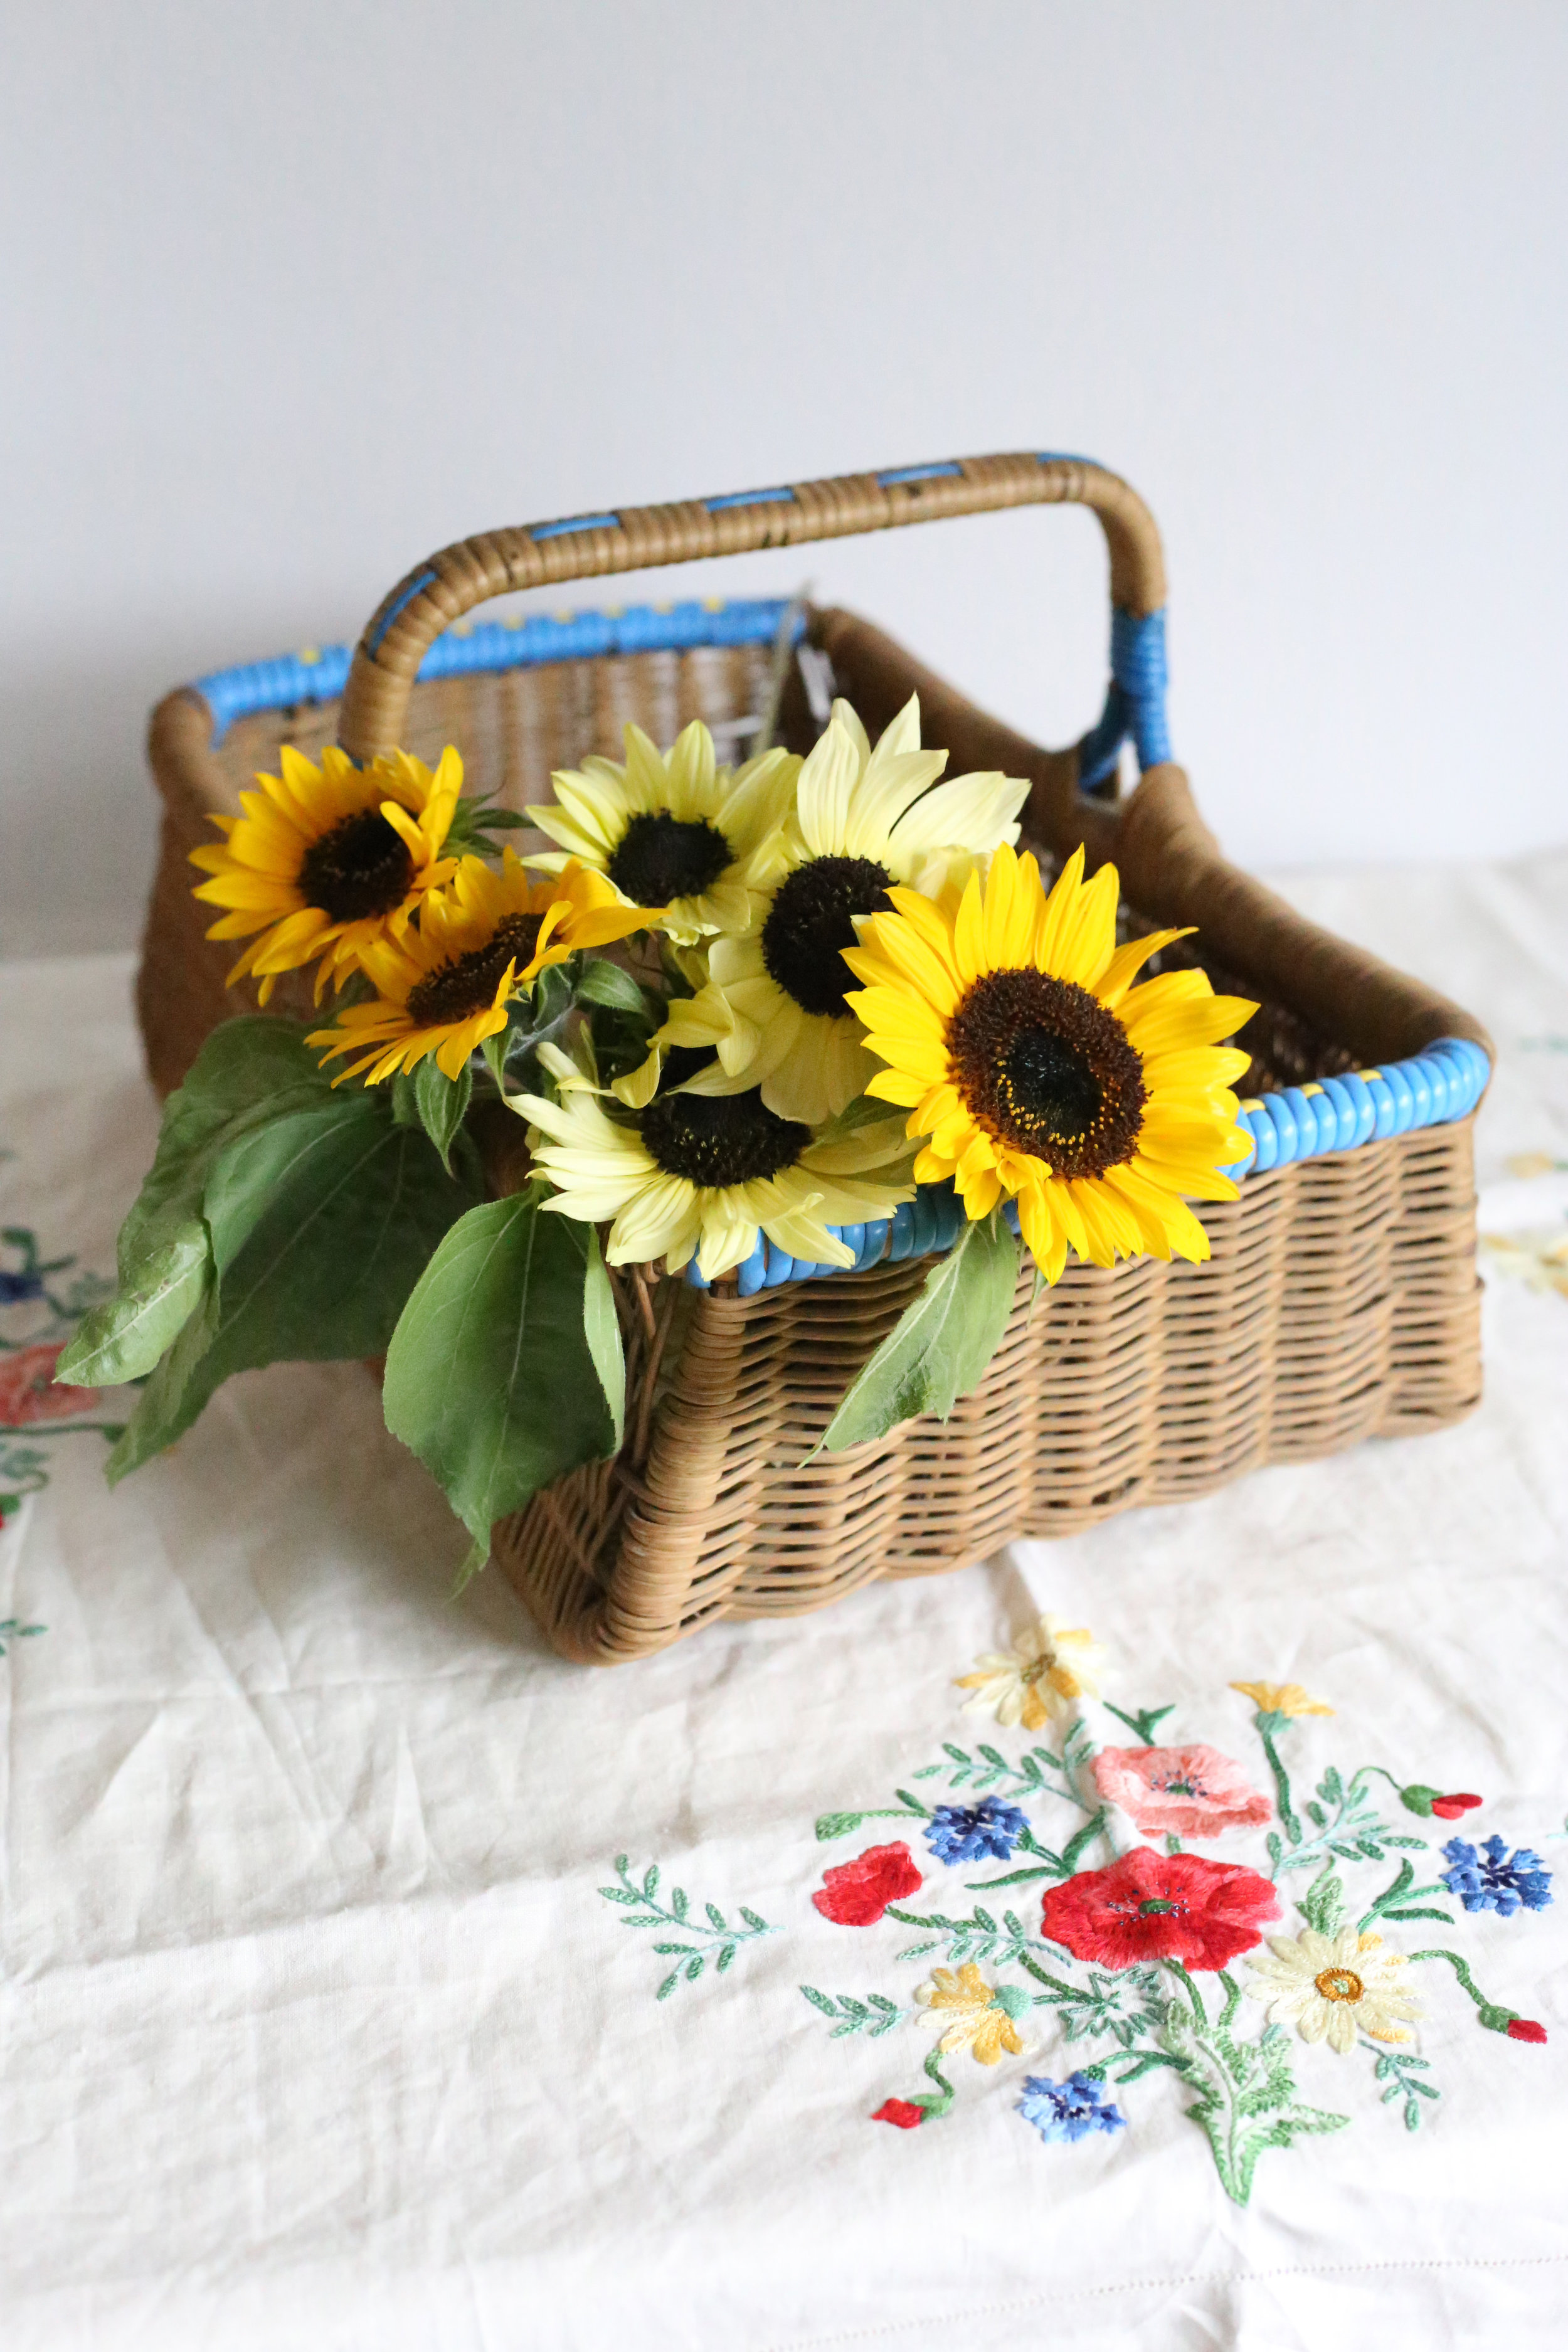 04Mar_Sunflowers_in_a_Basket.jpg